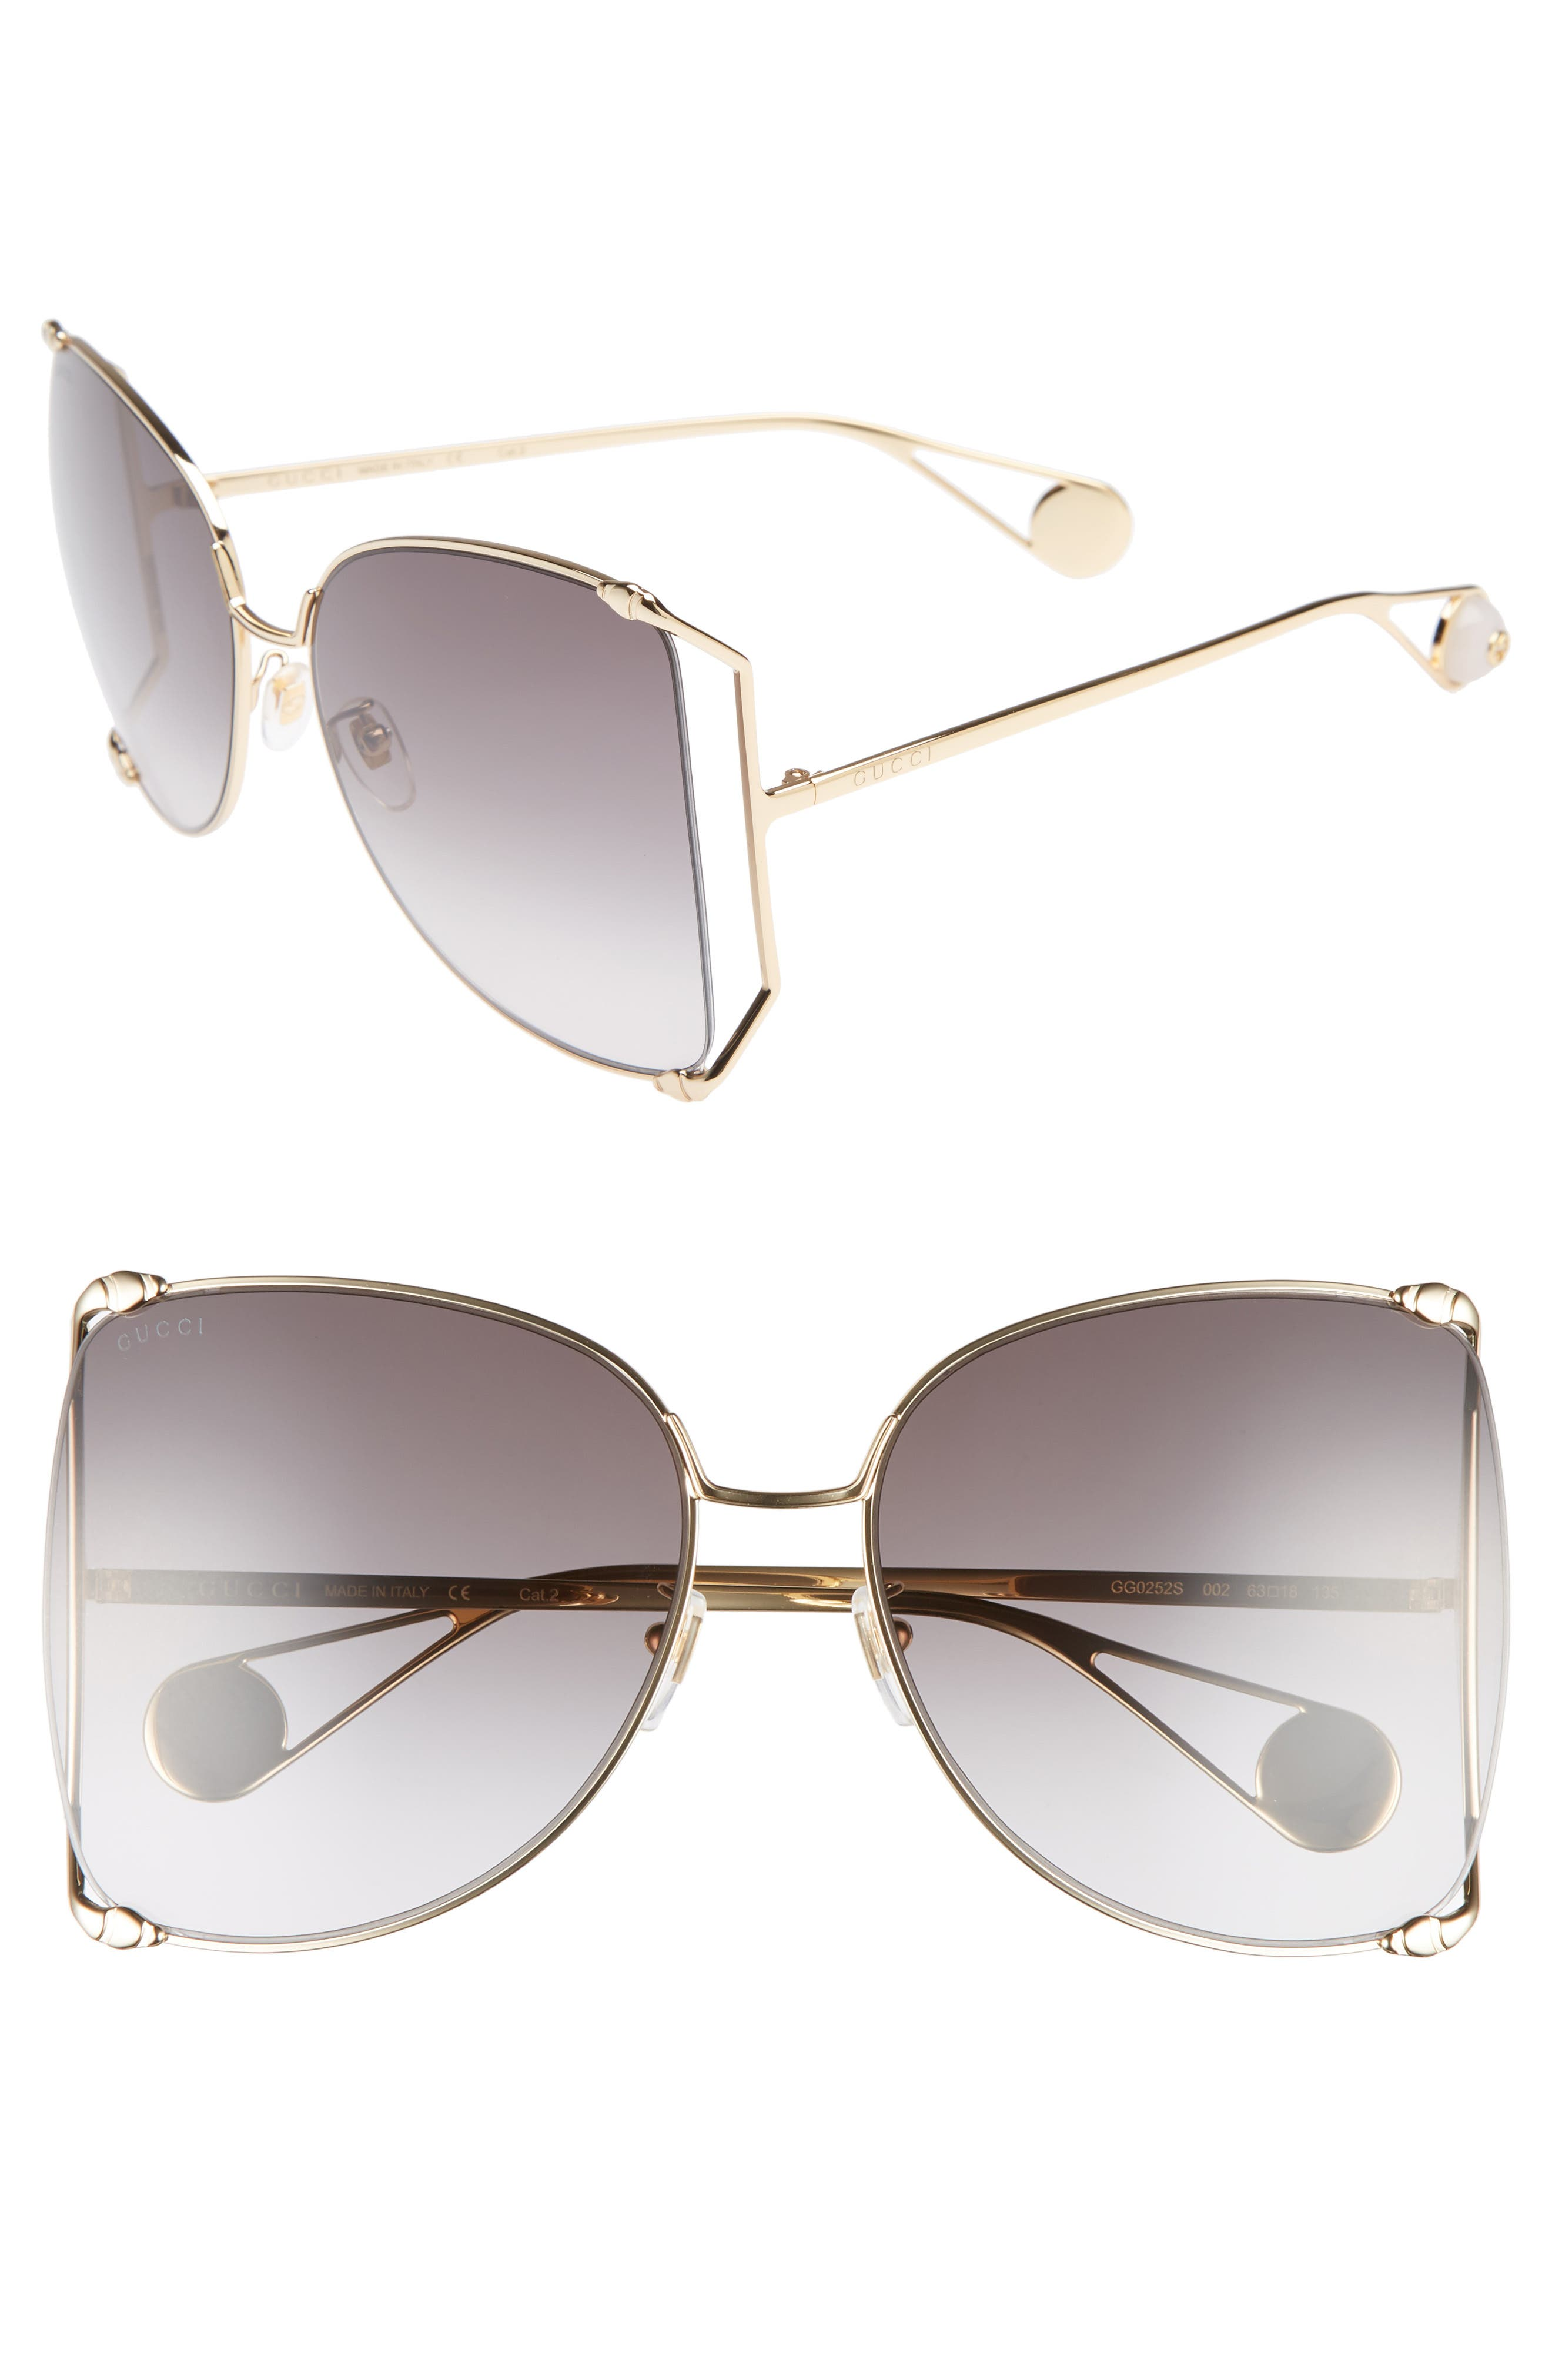 GUCCI, 63mm Gradient Oversize Butterfly Sunglasses, Main thumbnail 1, color, GOLD/ GRADIENT GREY